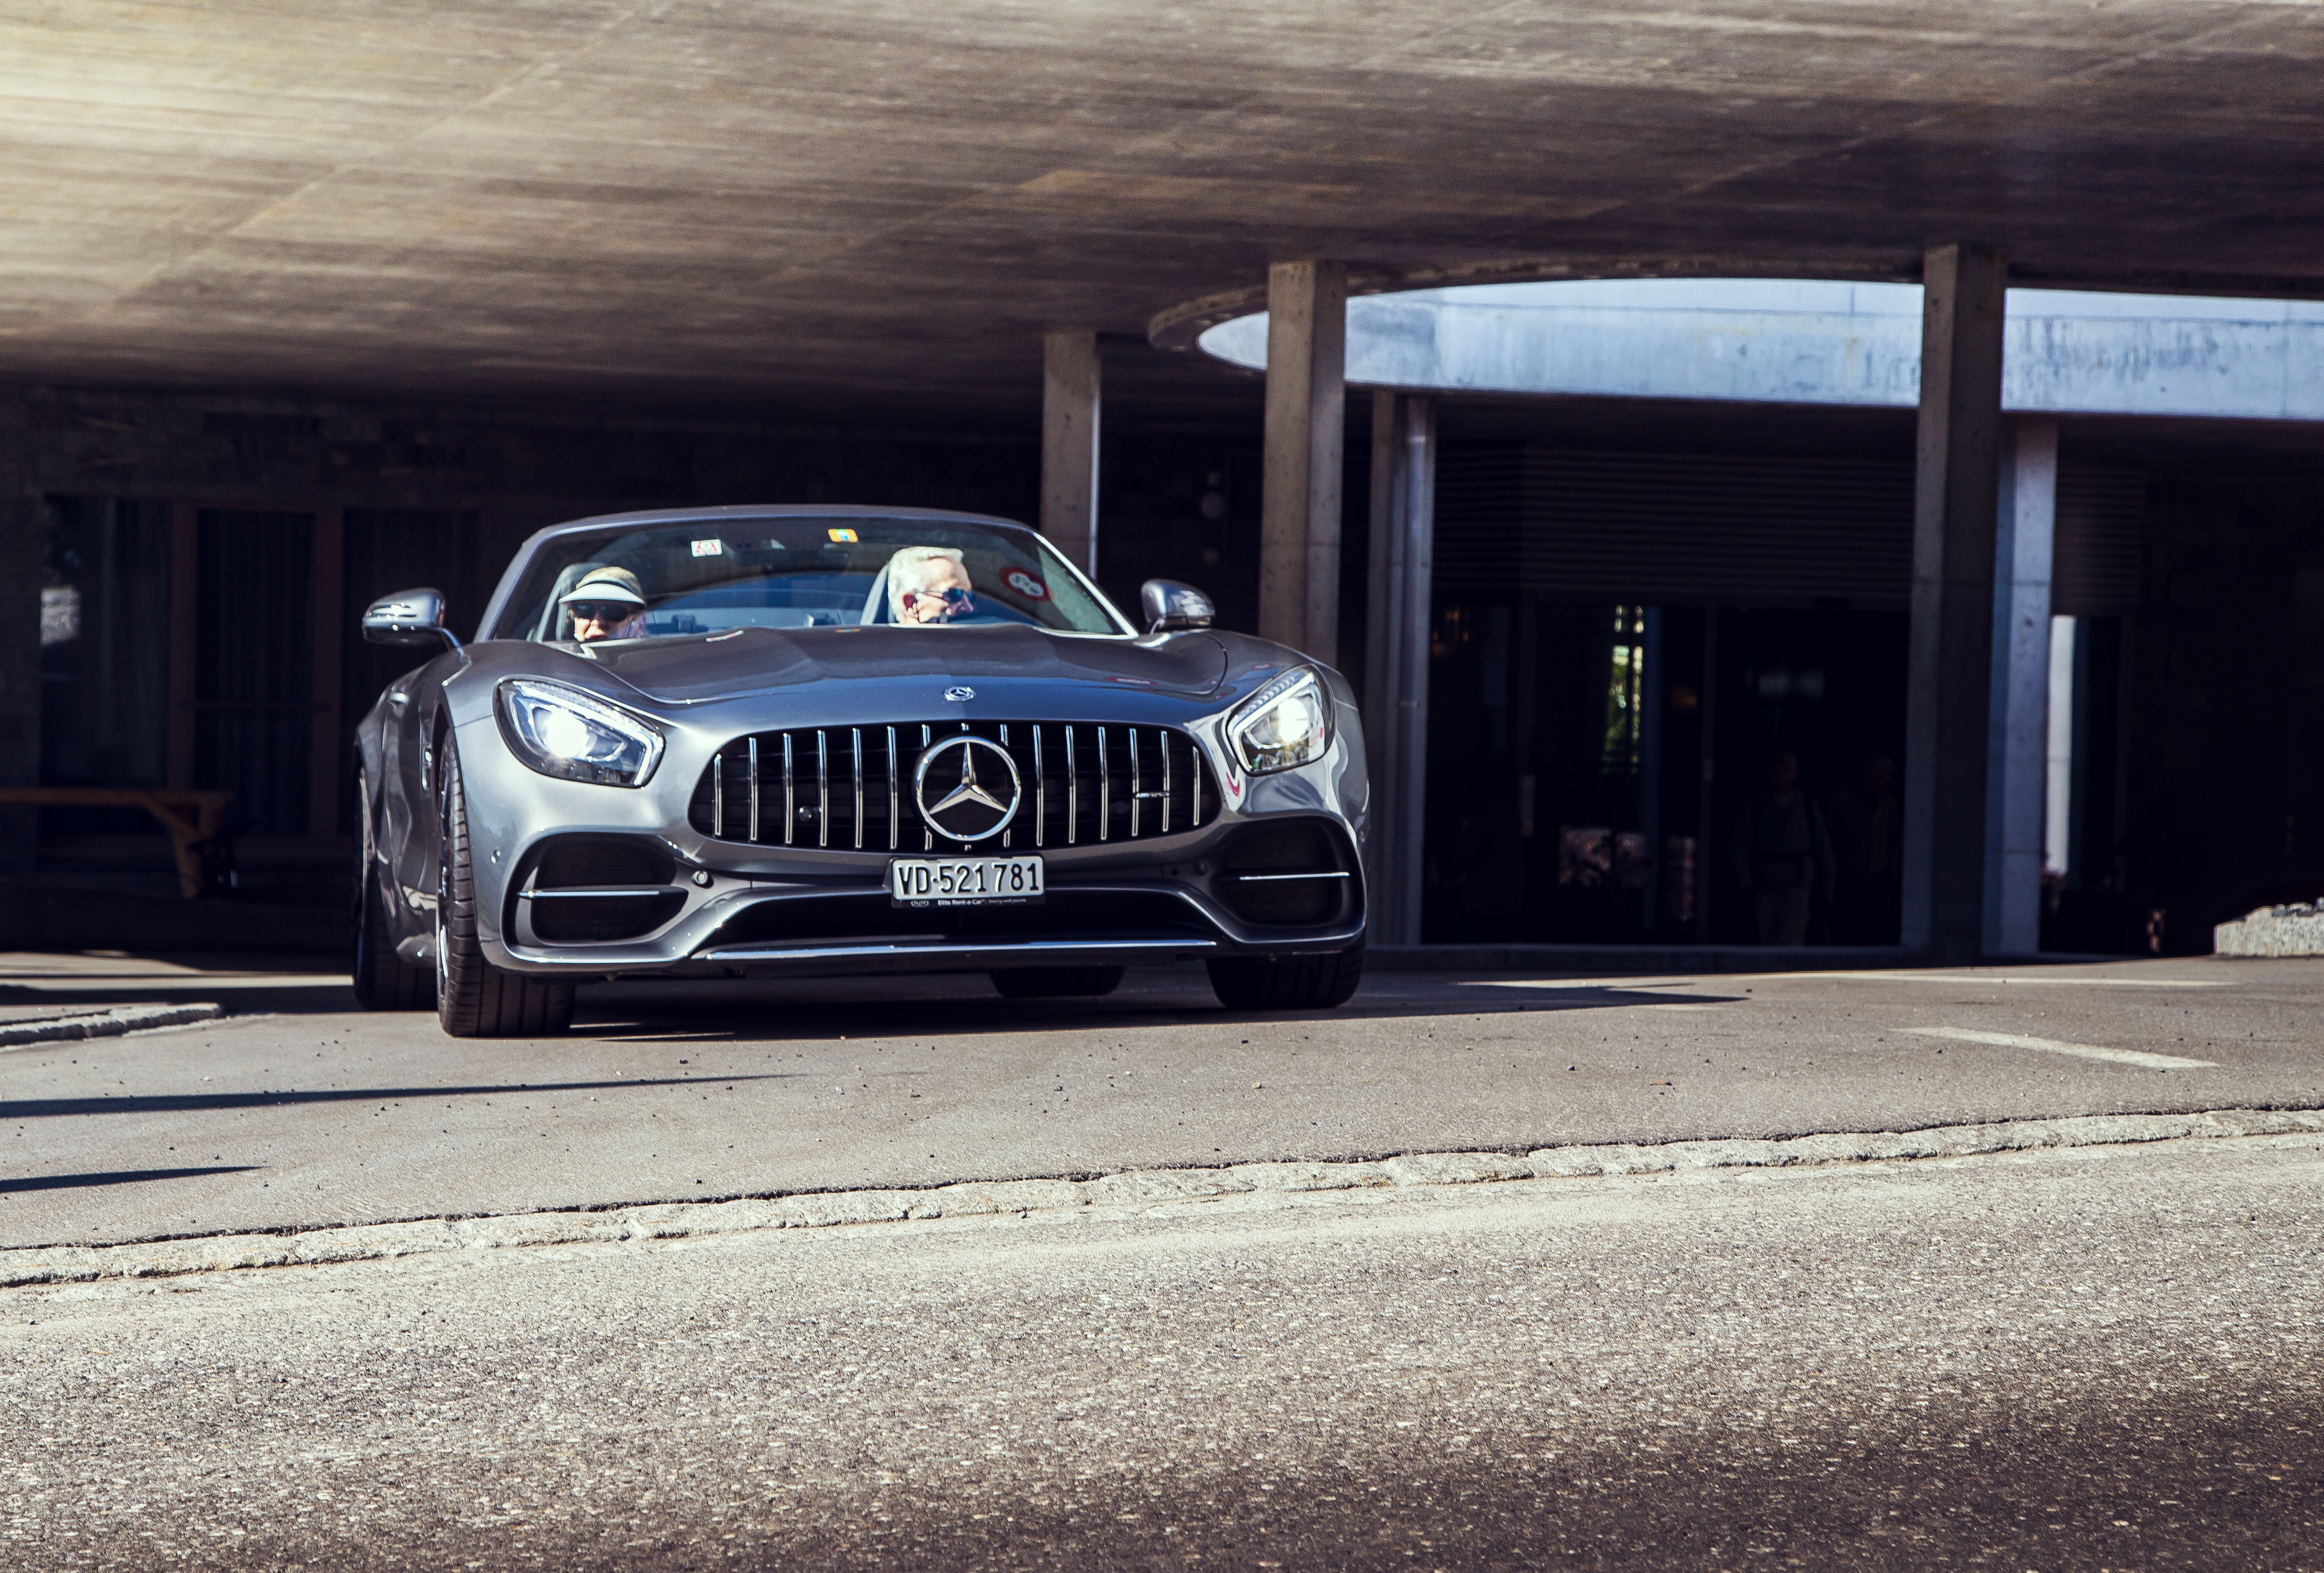 Supercar Experiences in the Alps - AMG Hotel delivery